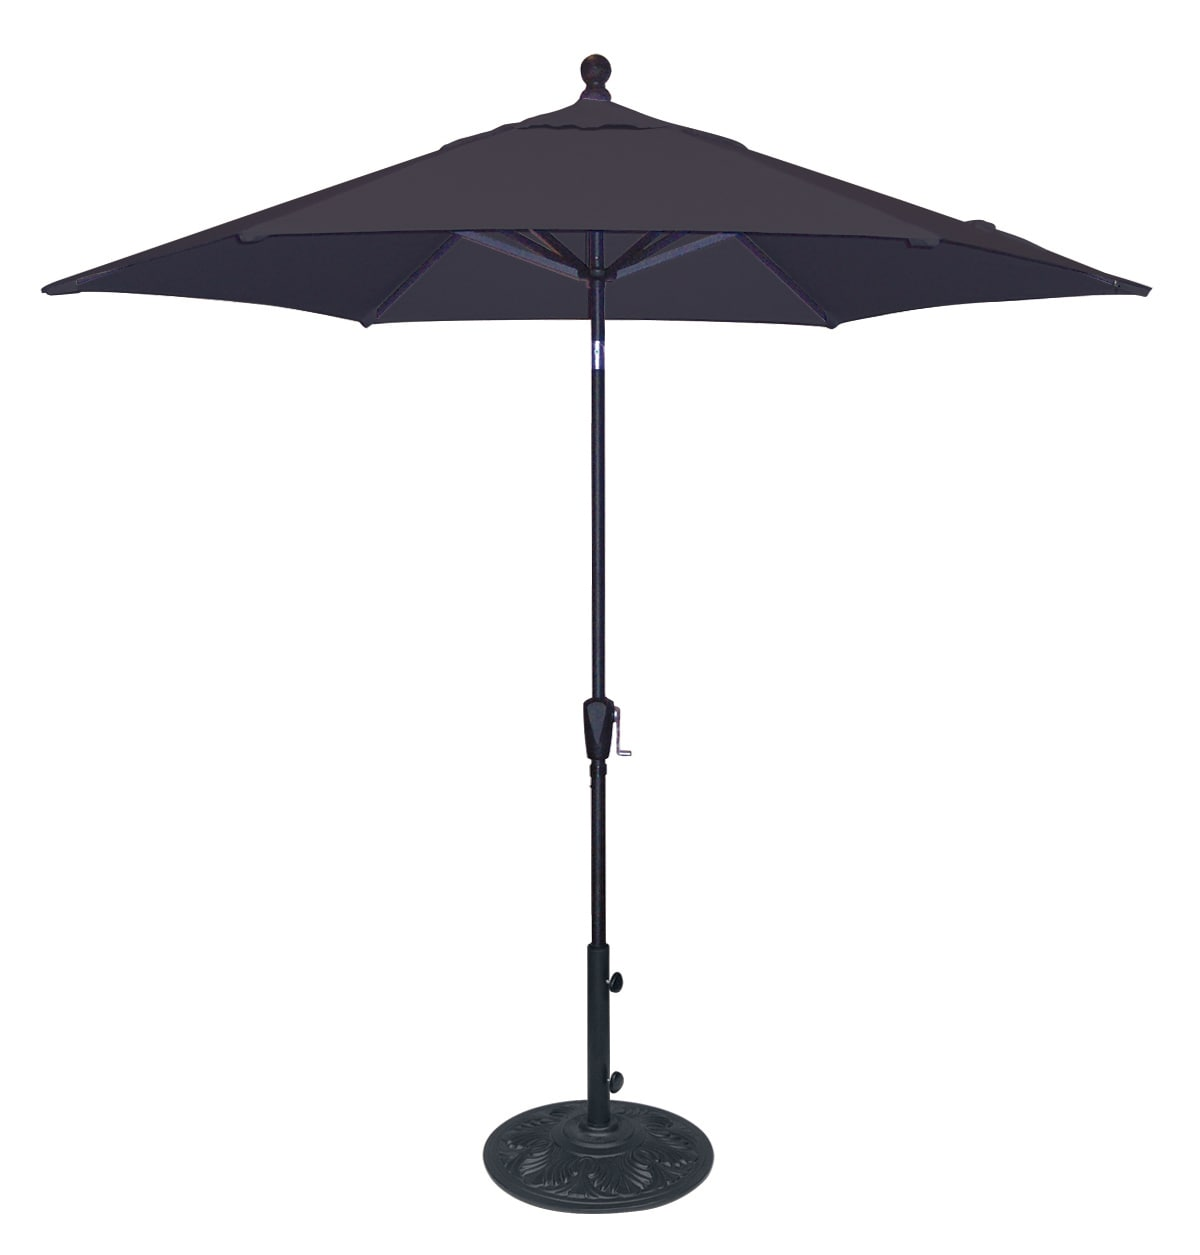 Black 9' Umbrella